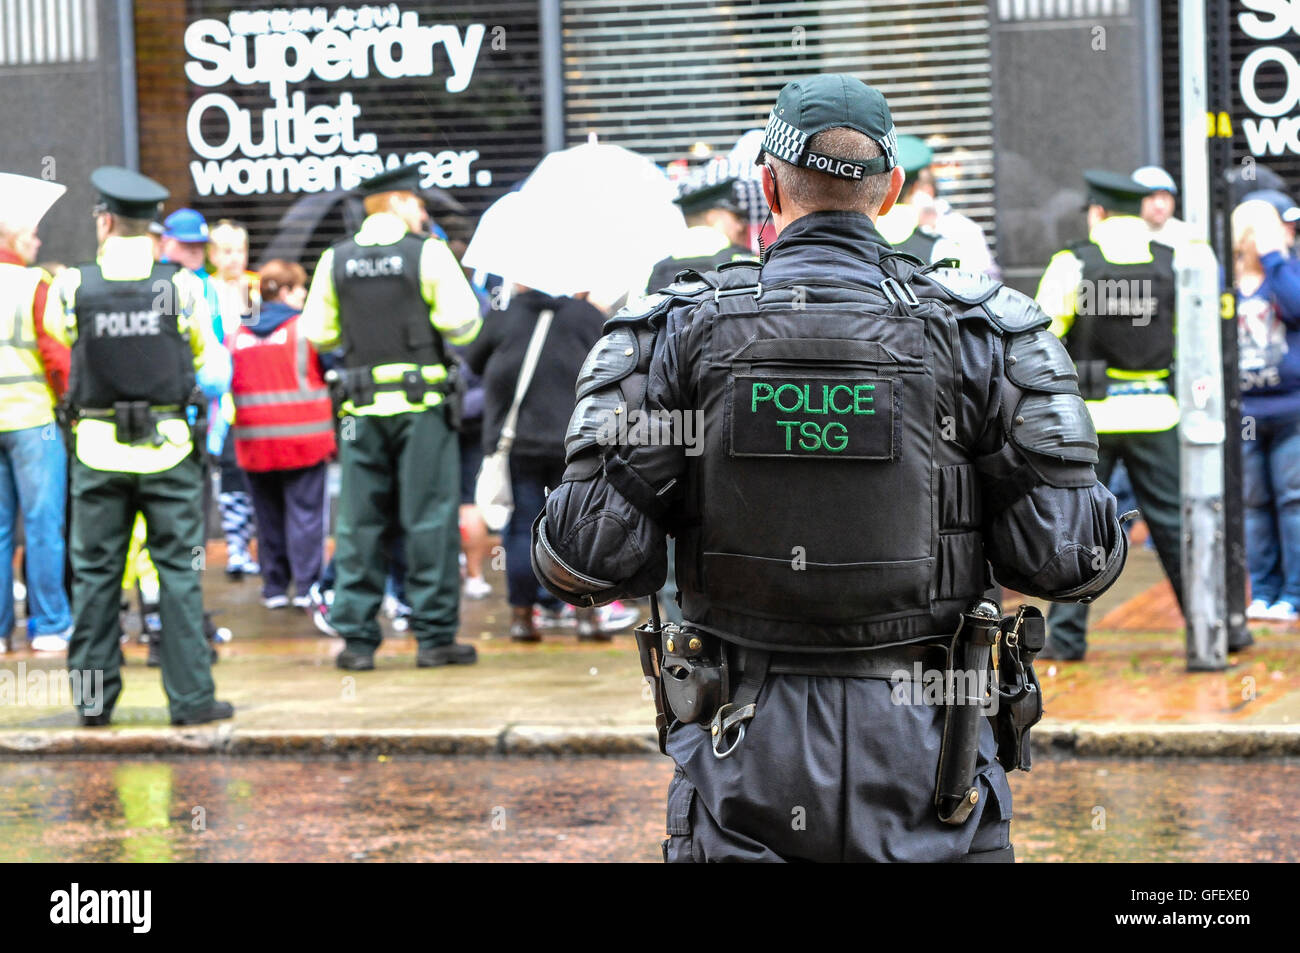 Belfast, Northern Ireland. 10 Aug 2014 - Police officers keep a crowd of people under control, while a member of - Stock Image